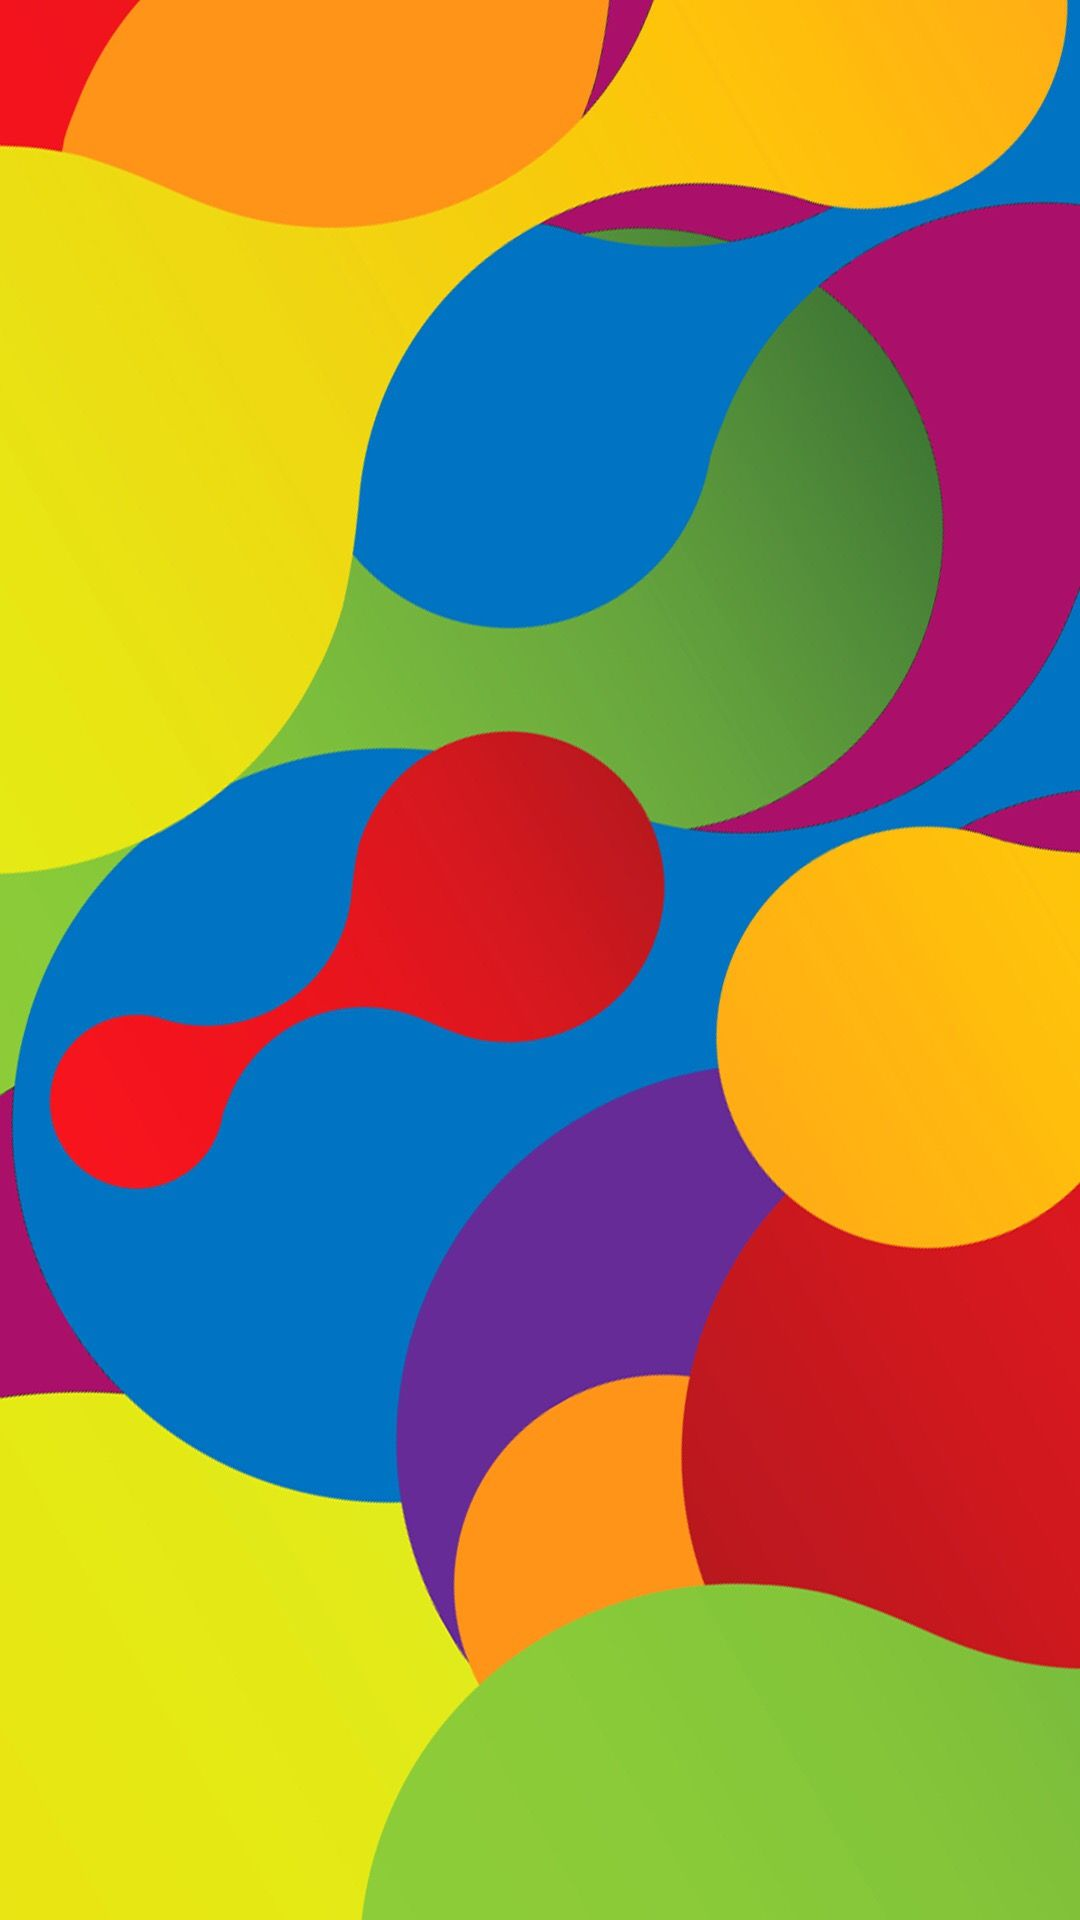 Colorful Geometric Abstract Wallpaper With Images Geometric